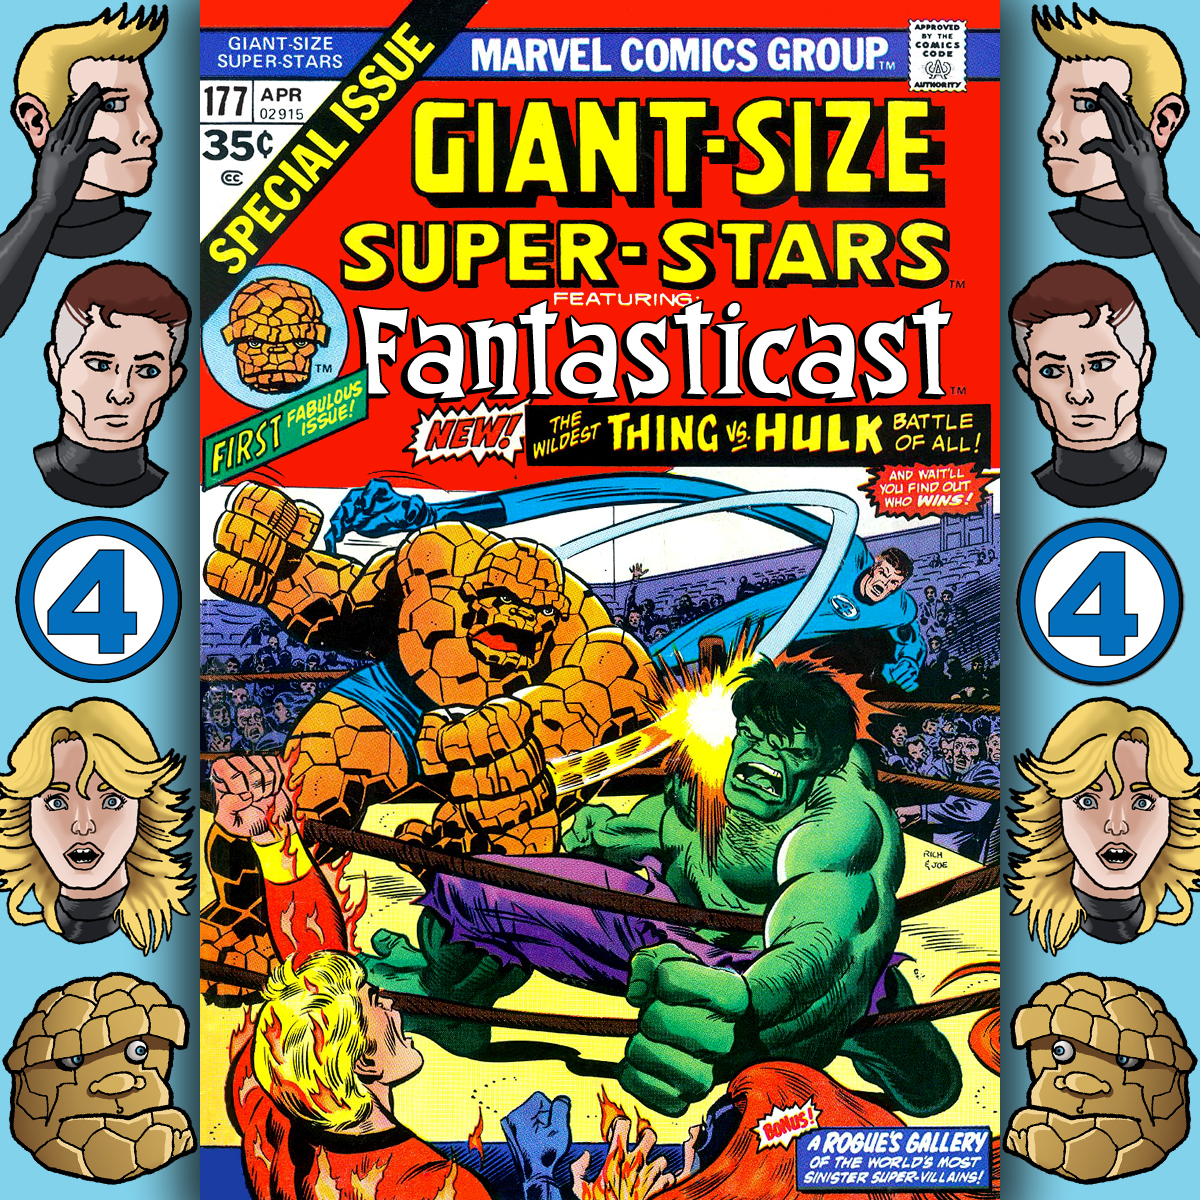 Episode 177: Giant-Size Super Stars #1 - The Mind Of The Monster